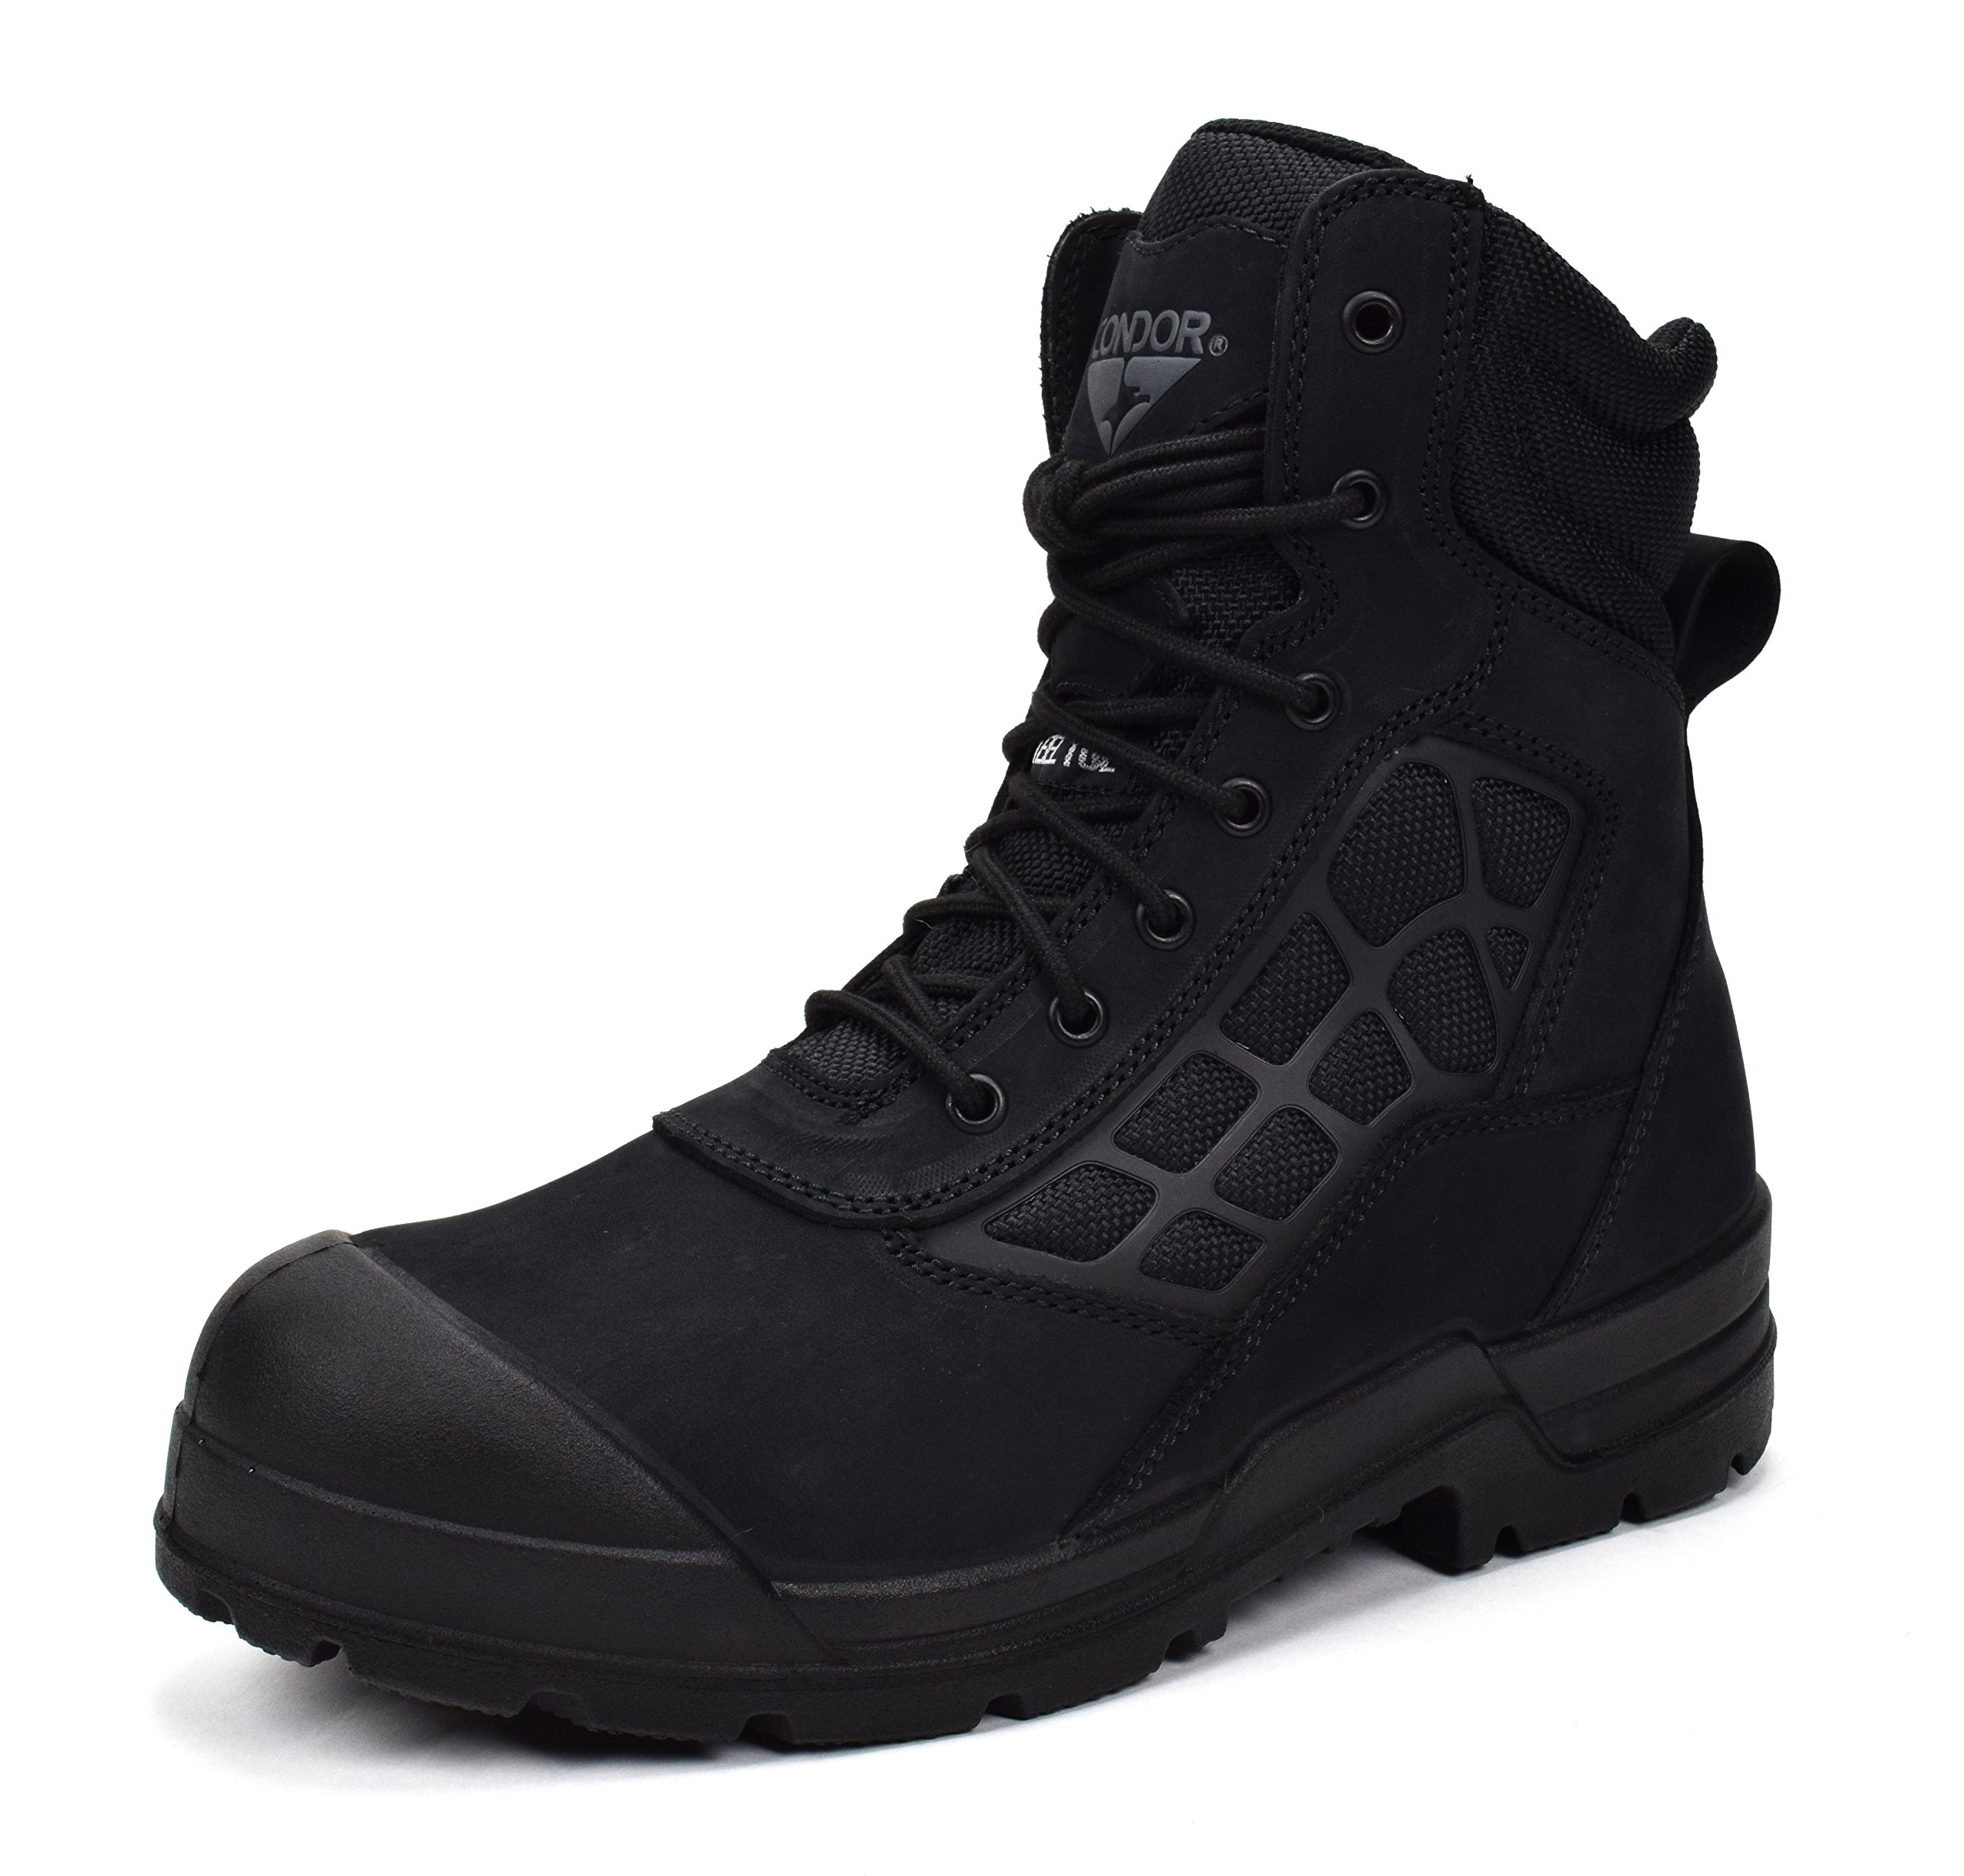 Condor Men's Colorado 8'' Steel Toe Work Boot (13 E US, Black Nubuck) by CONDOR